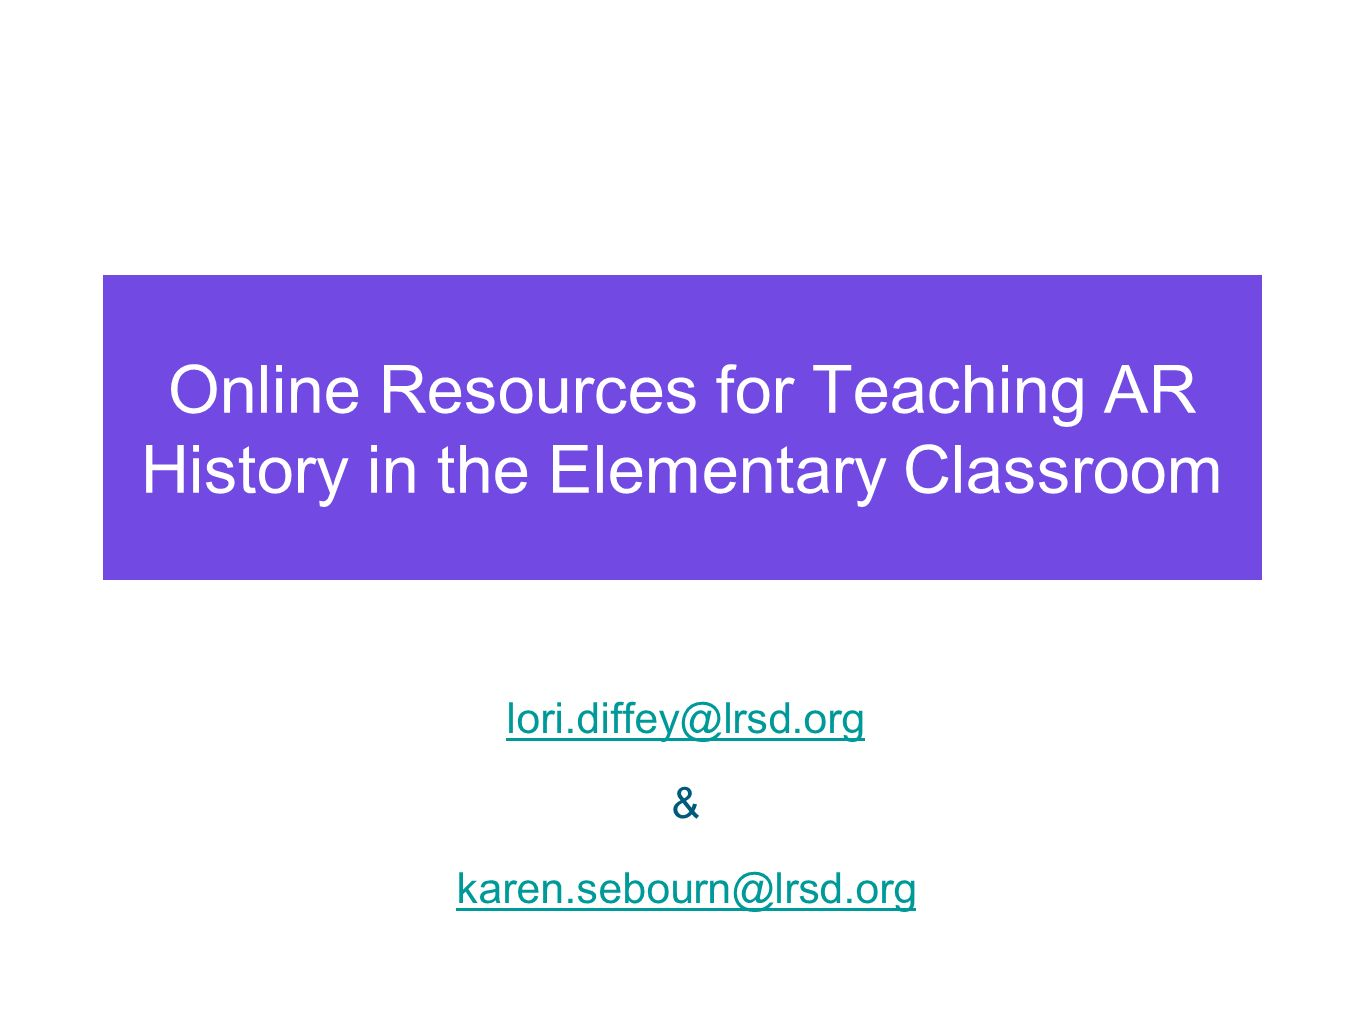 Online Resources for Teaching AR History in the Elementary Classroom lori.diffey@lrsd.org & karen.sebourn@lrsd.org